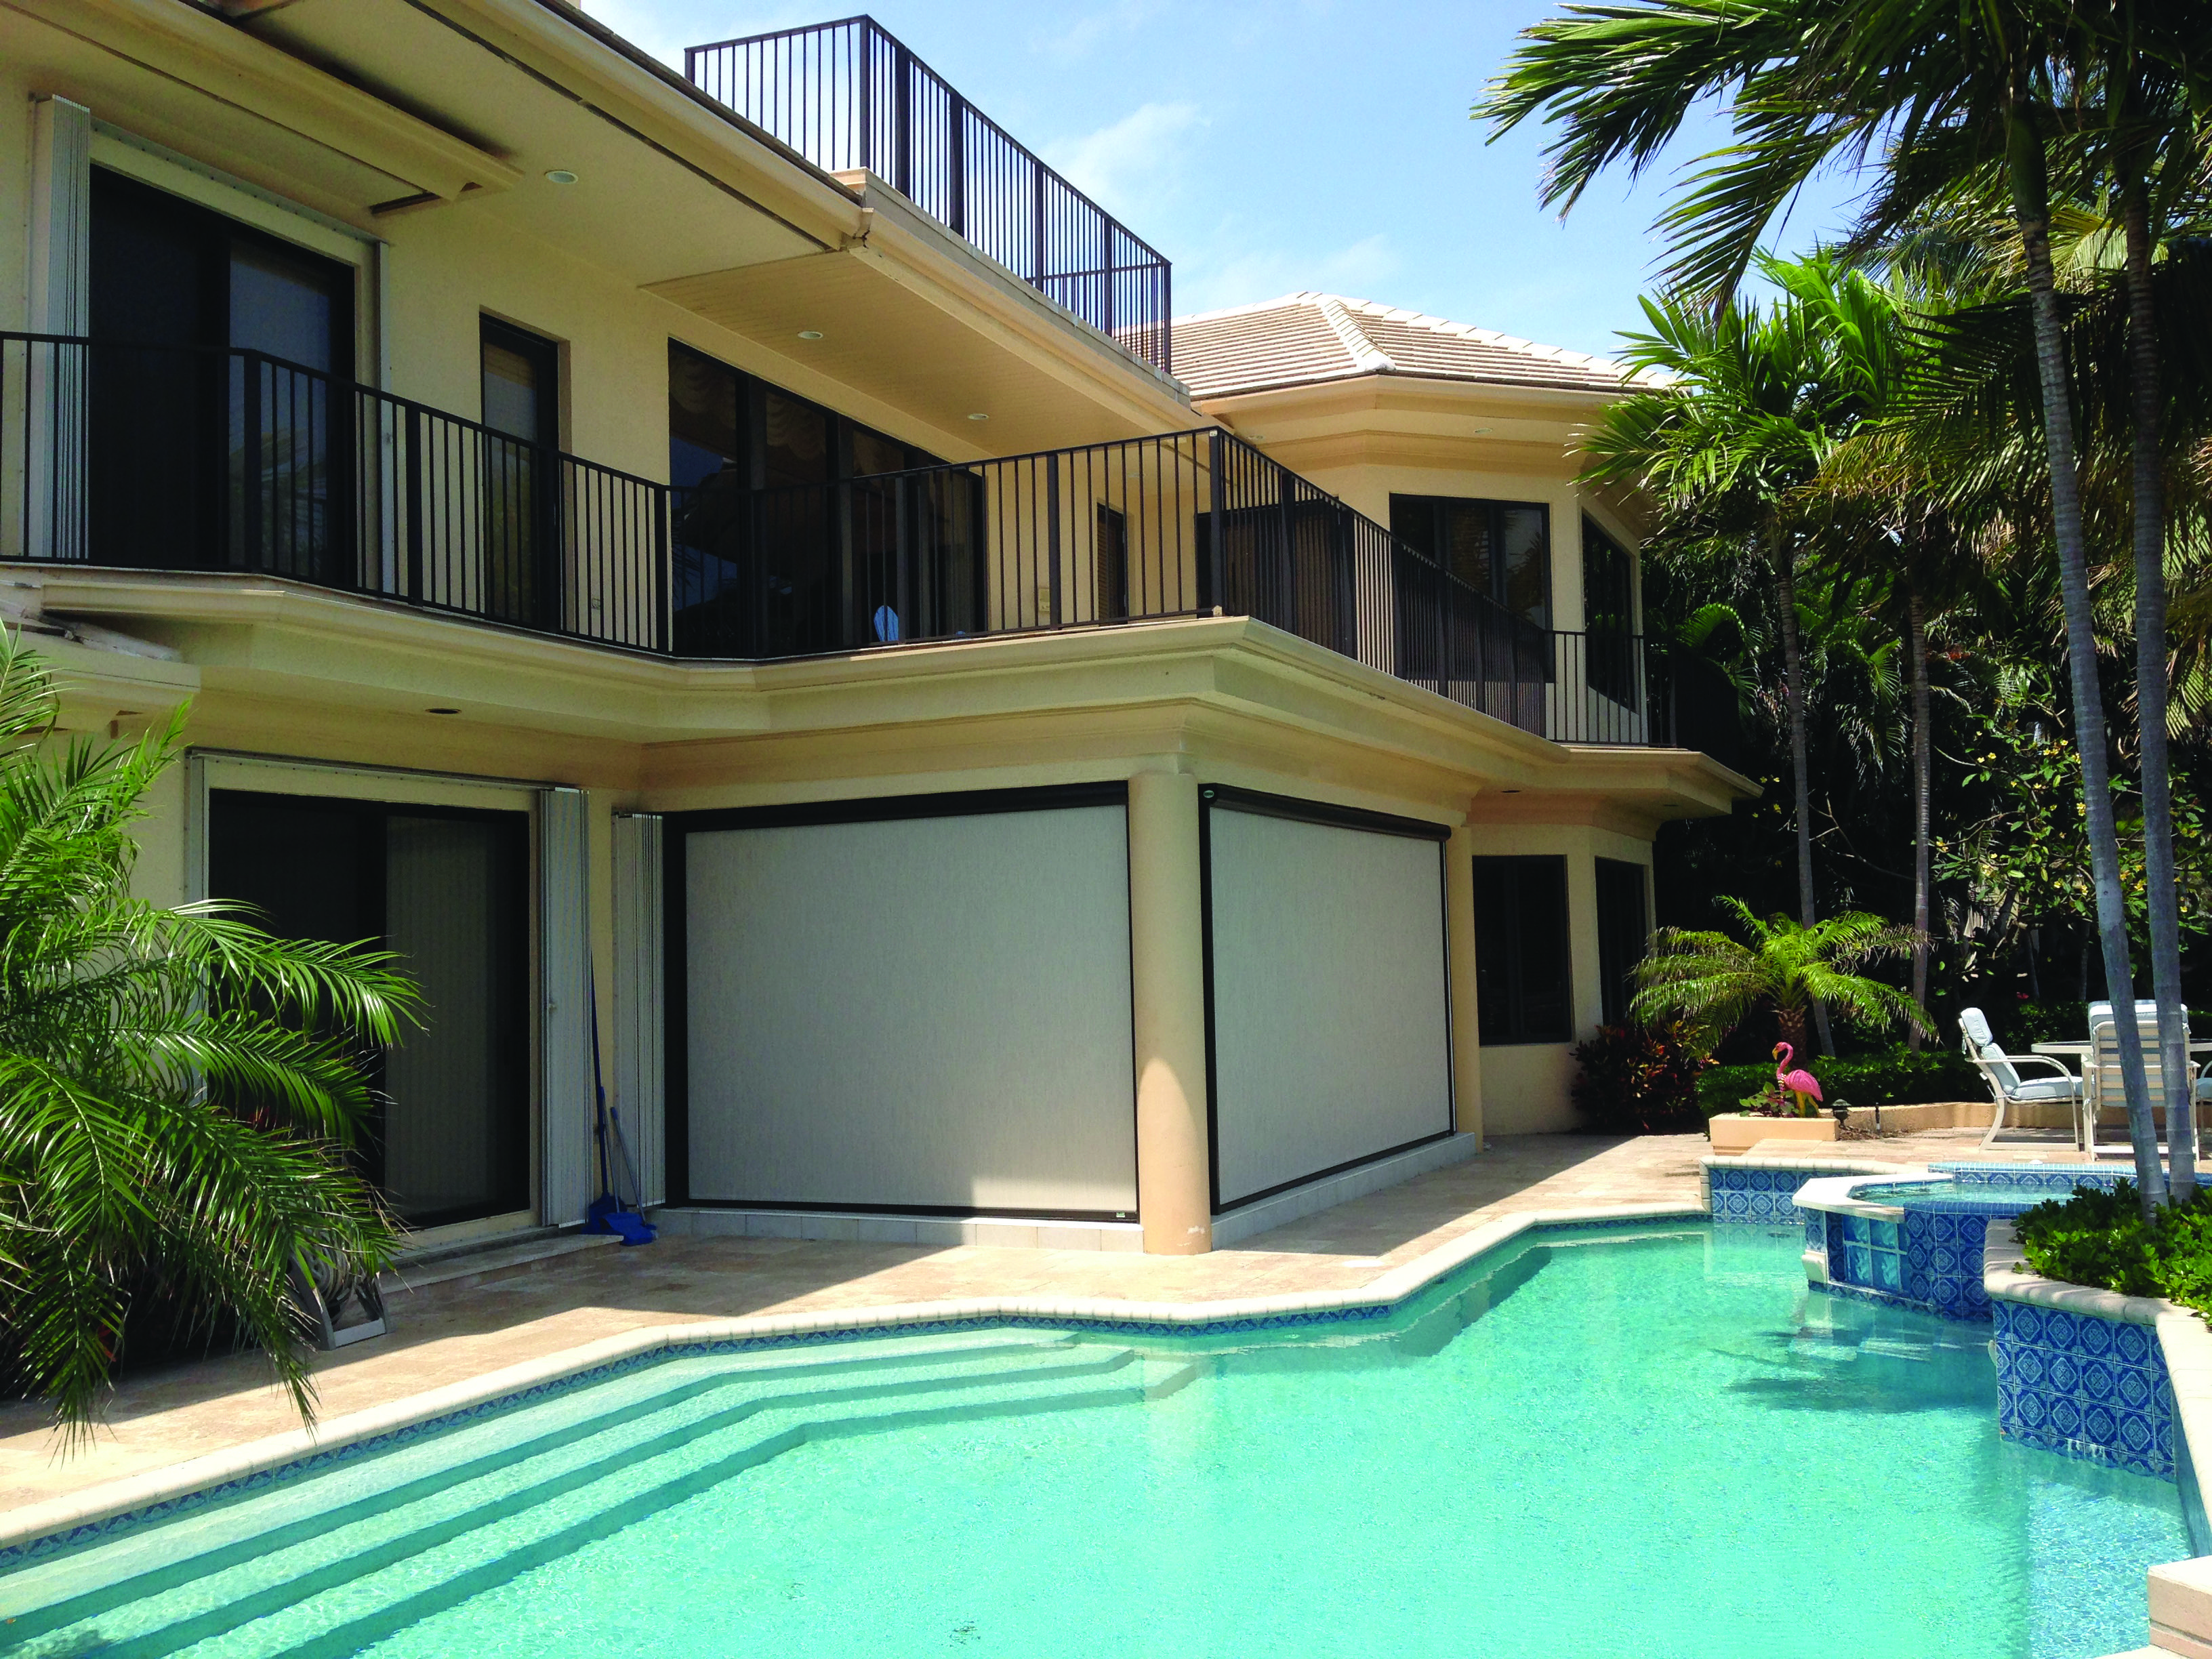 resized systems new orlando retractable screens sunesta awnings shelters motorized and products roof awning fl horizons